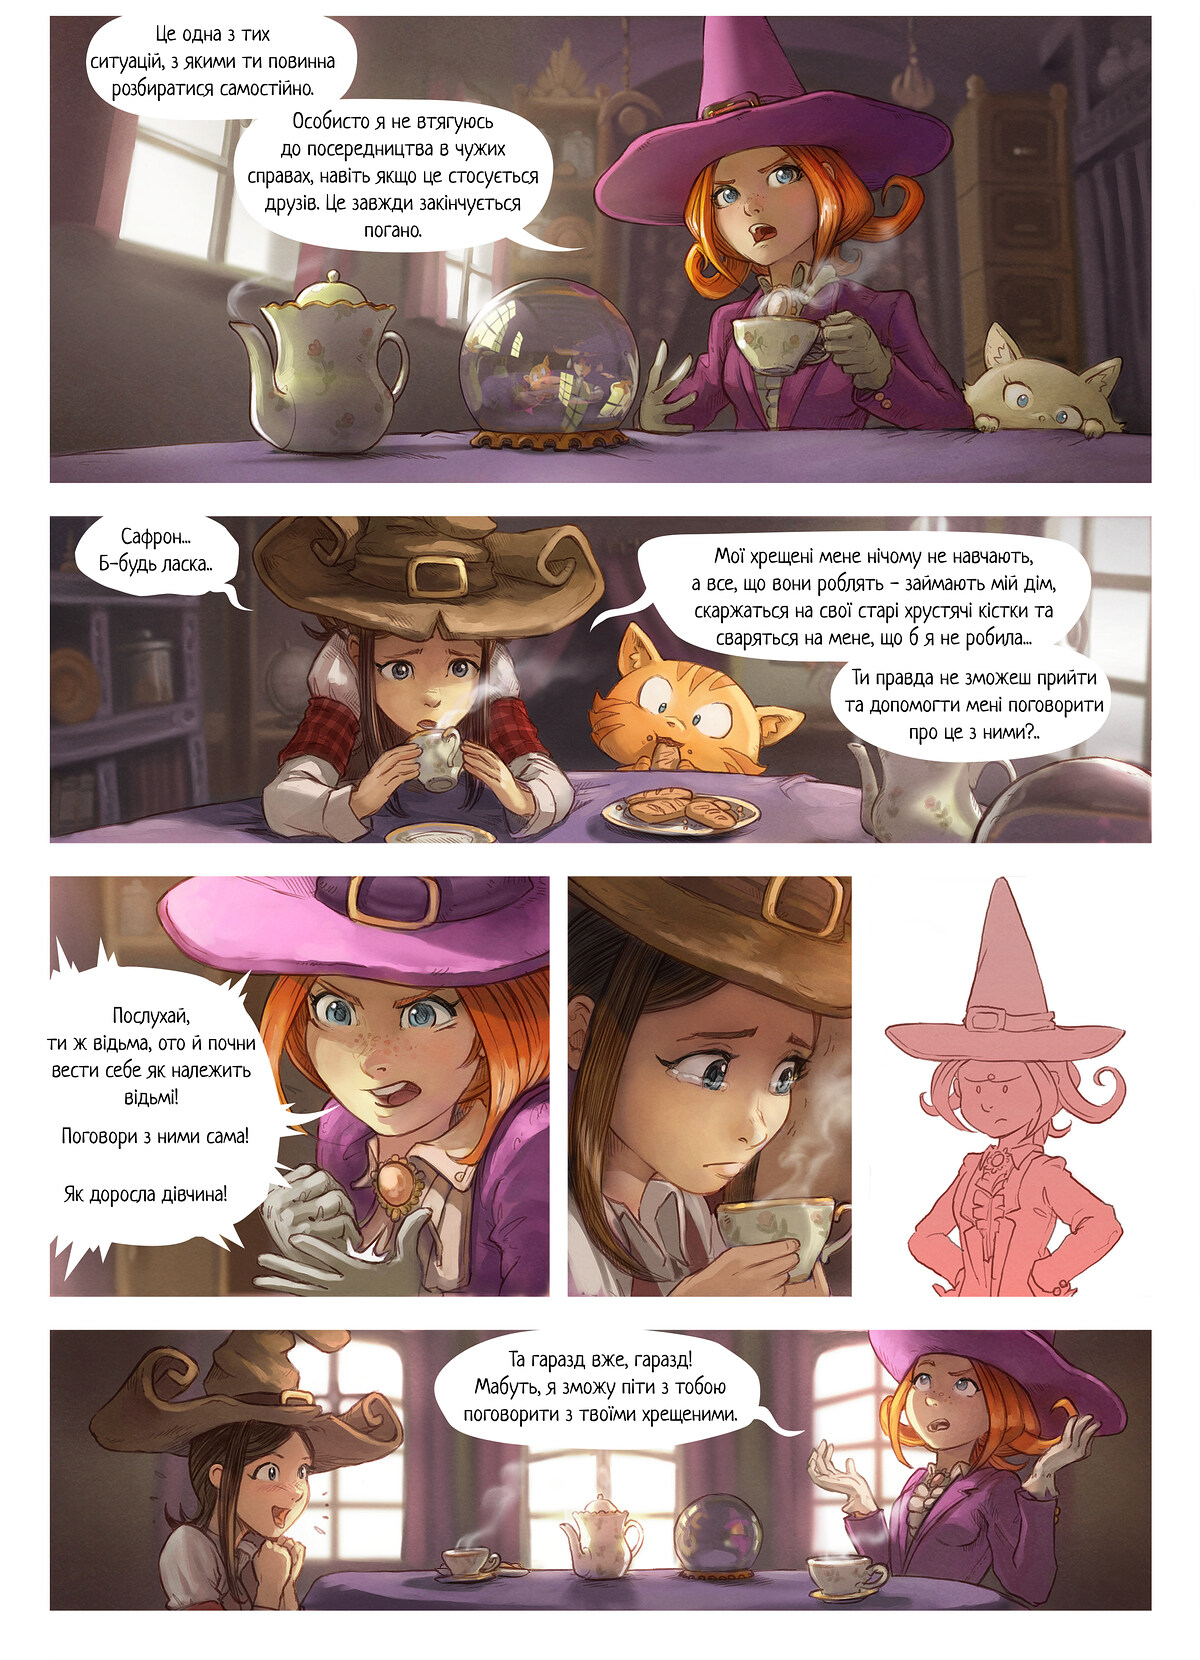 A webcomic page of Pepper&Carrot, епізод 16 [uk], стор. 2